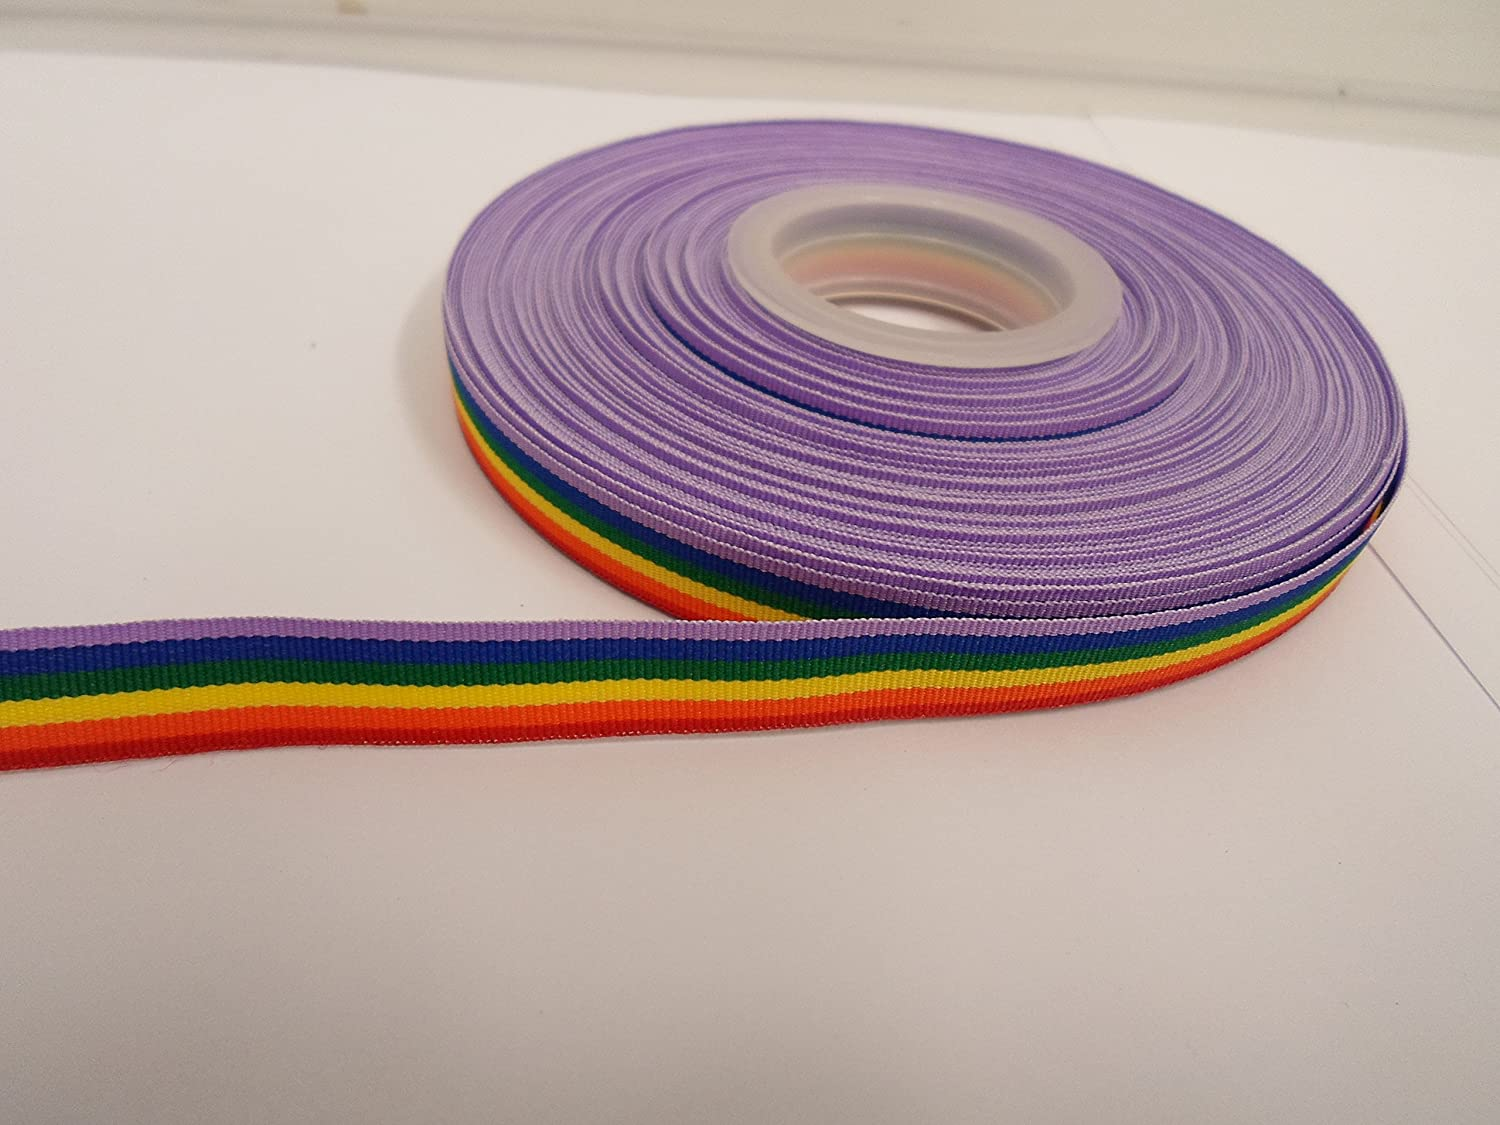 Beautiful Ribbon 2 Metros x 10mm Cinta de Arco Iris Gay Pride la Raya del Color